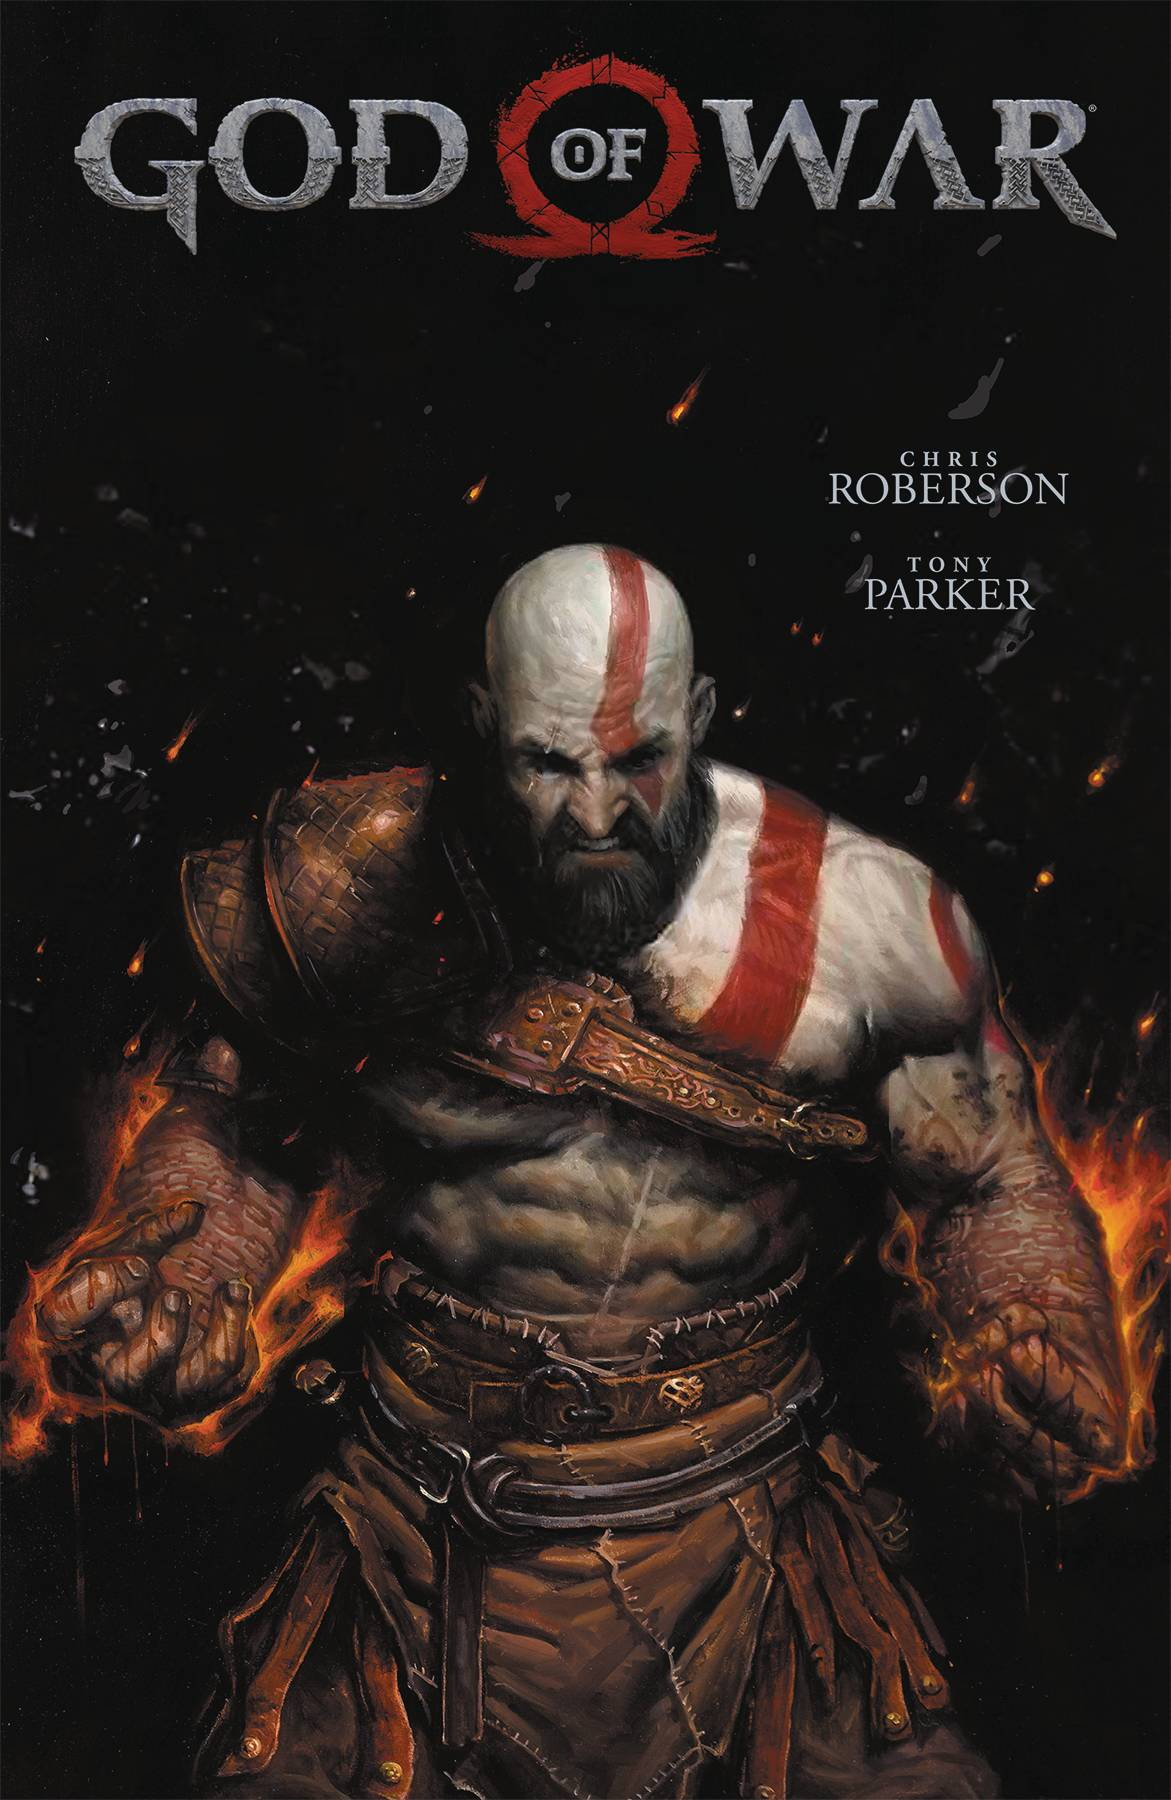 GOD OF WAR TP (JAN190446)